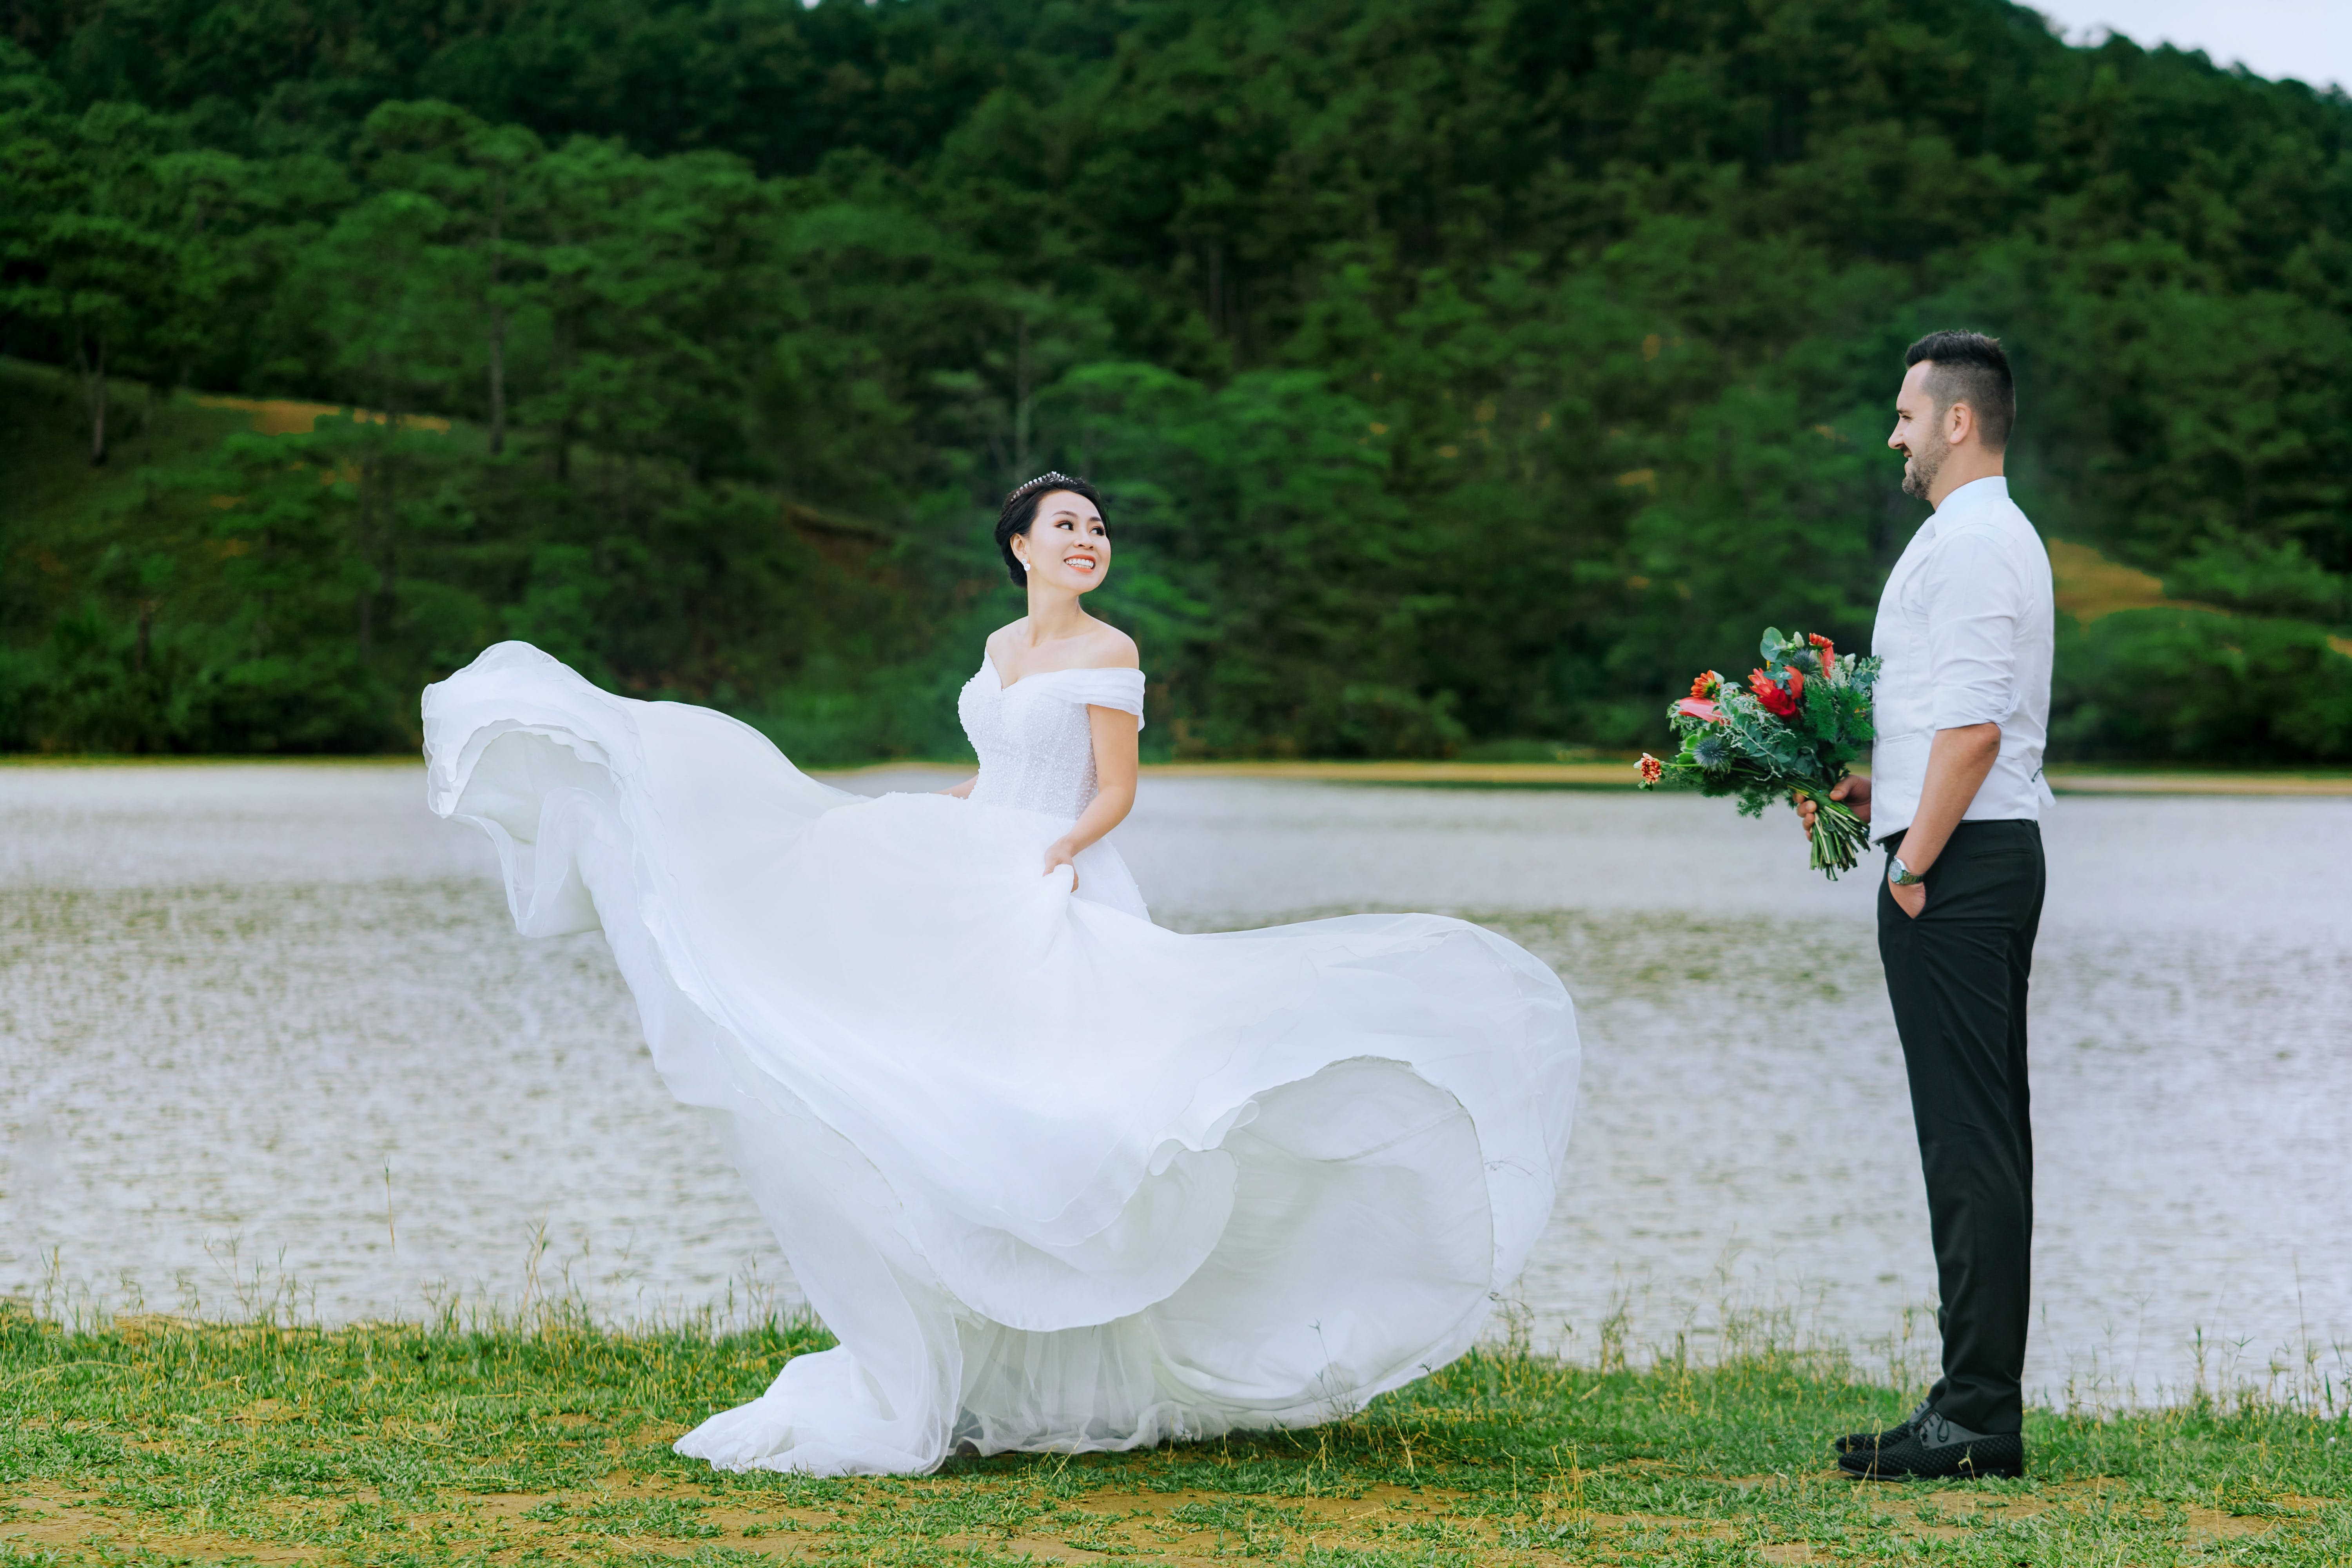 Bride Standing in Front of Groom Holding Bouquet of Flowers